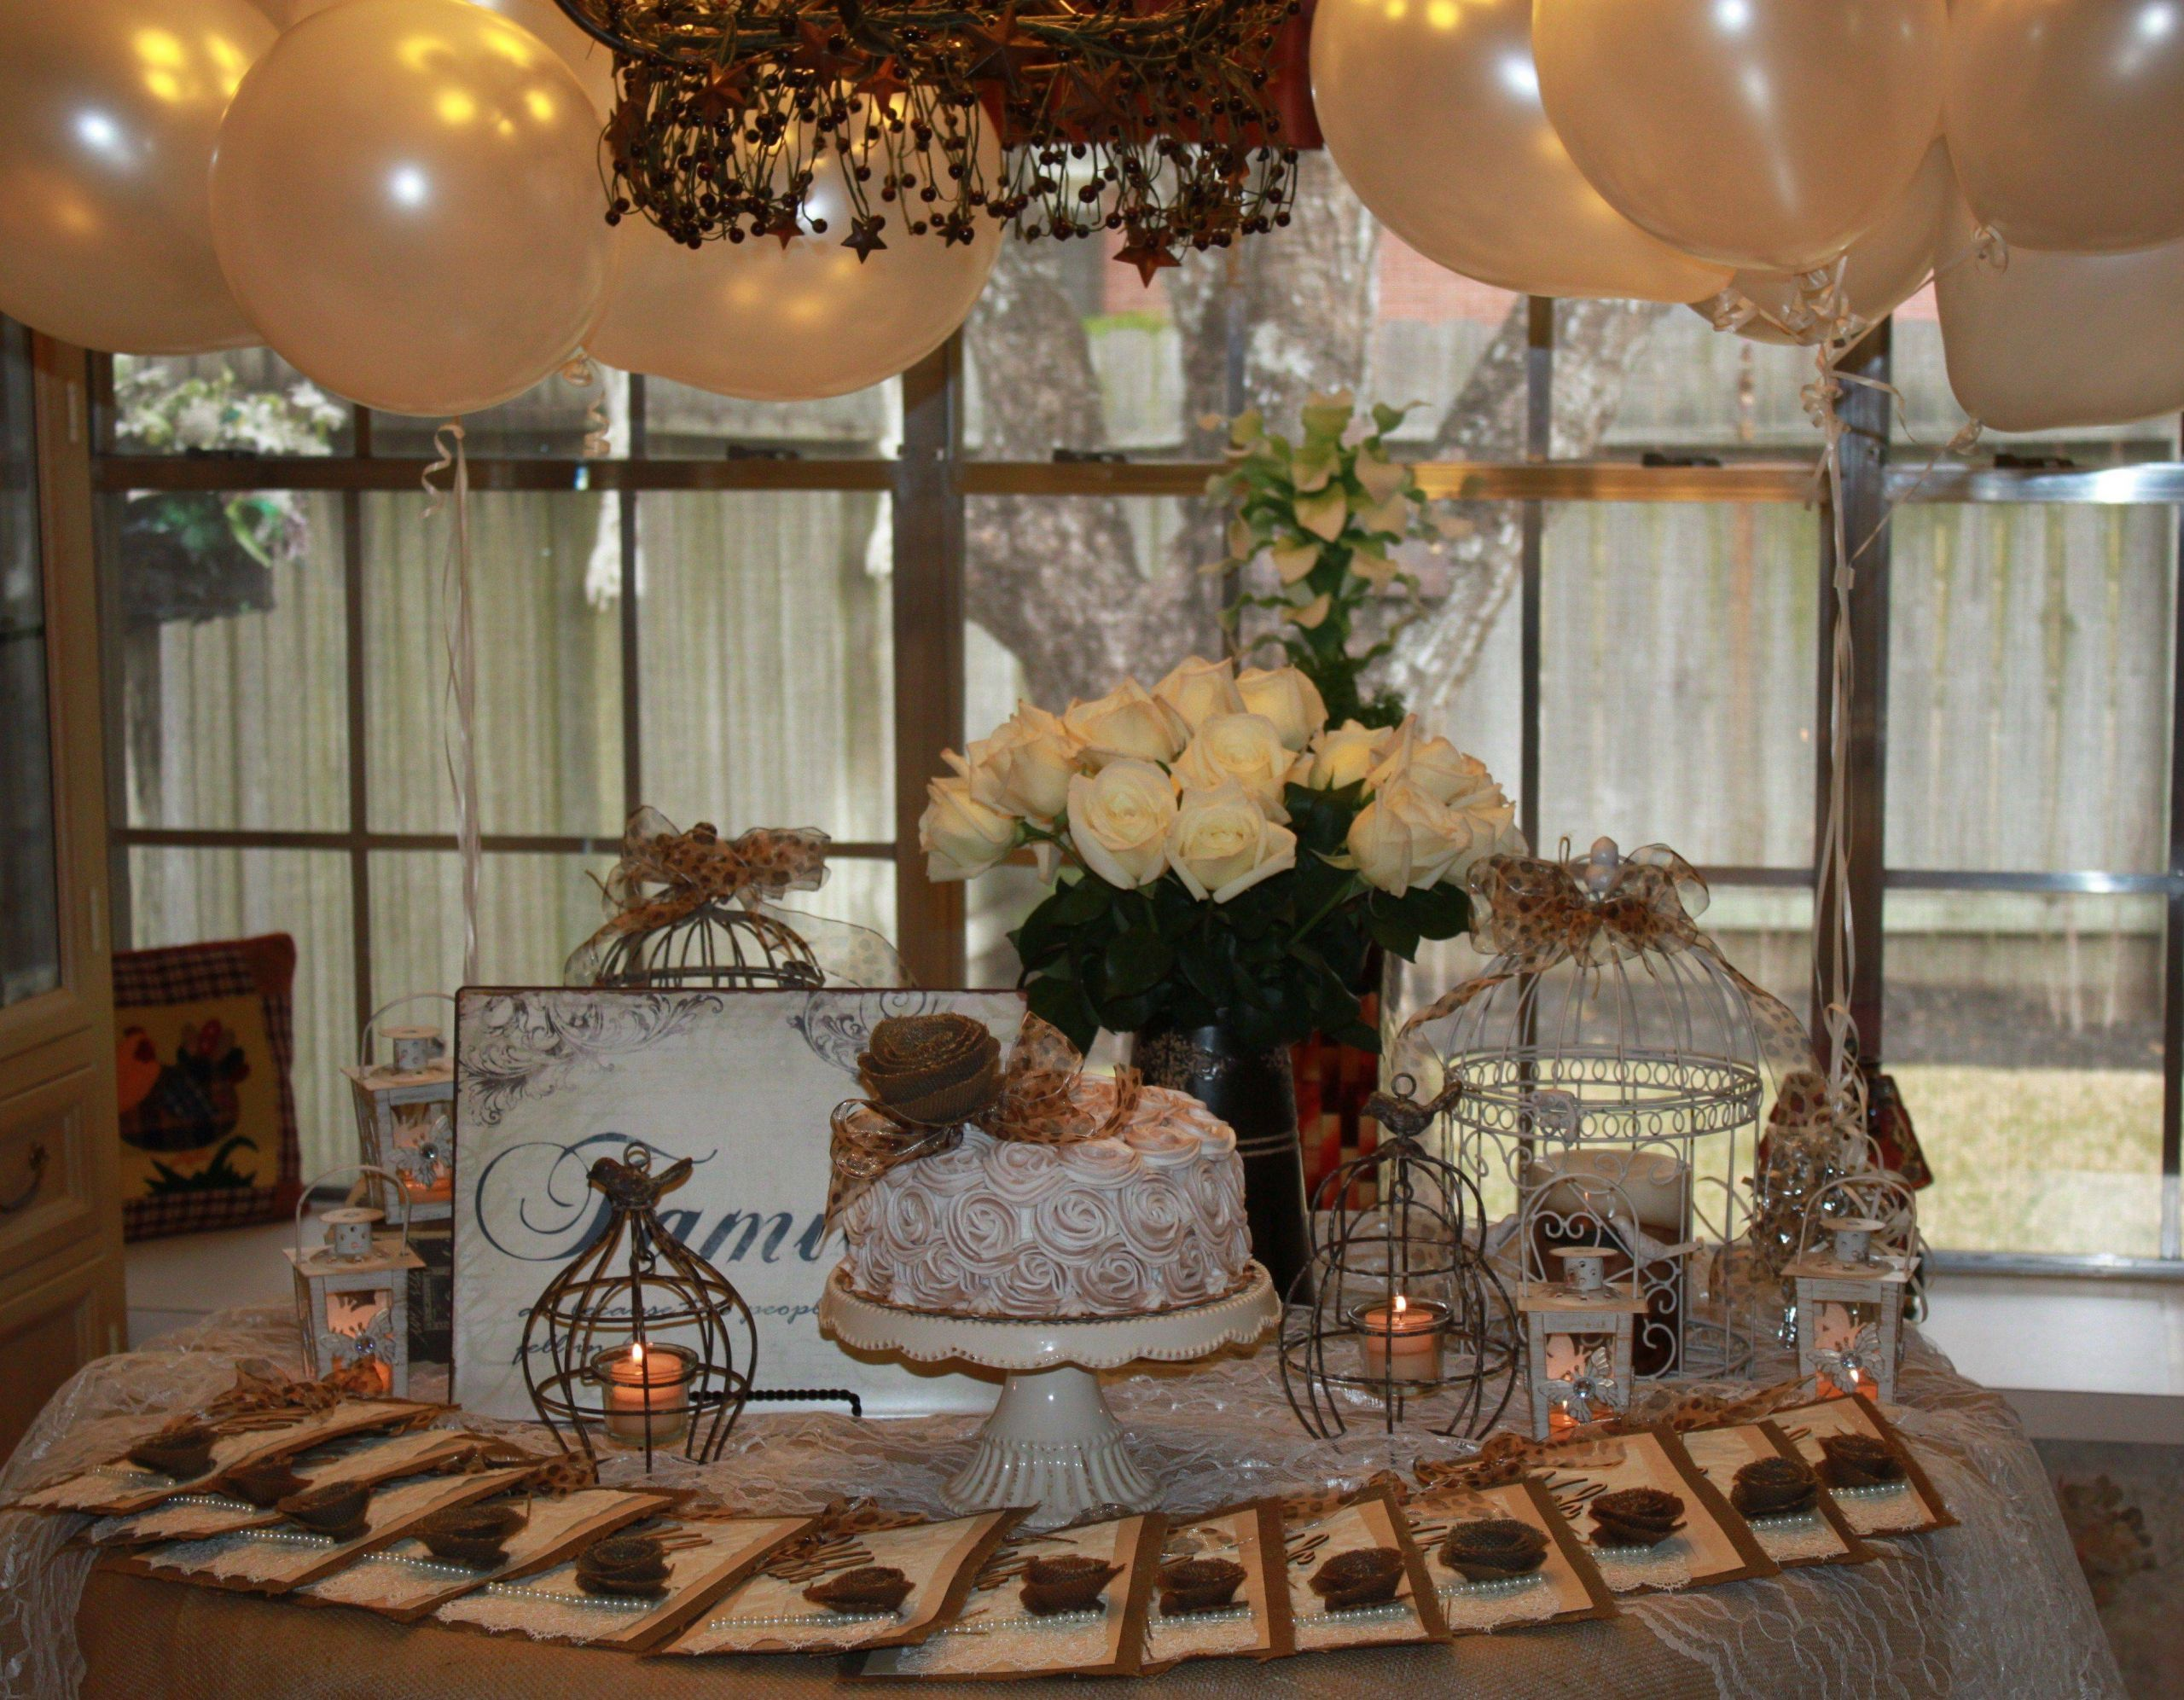 Decoration Ideas Lovely Birthday Decoration Ideas at Home Lantern Decoration Ideas New A Vintage Garden themed Party for Mom S 75th Birthday